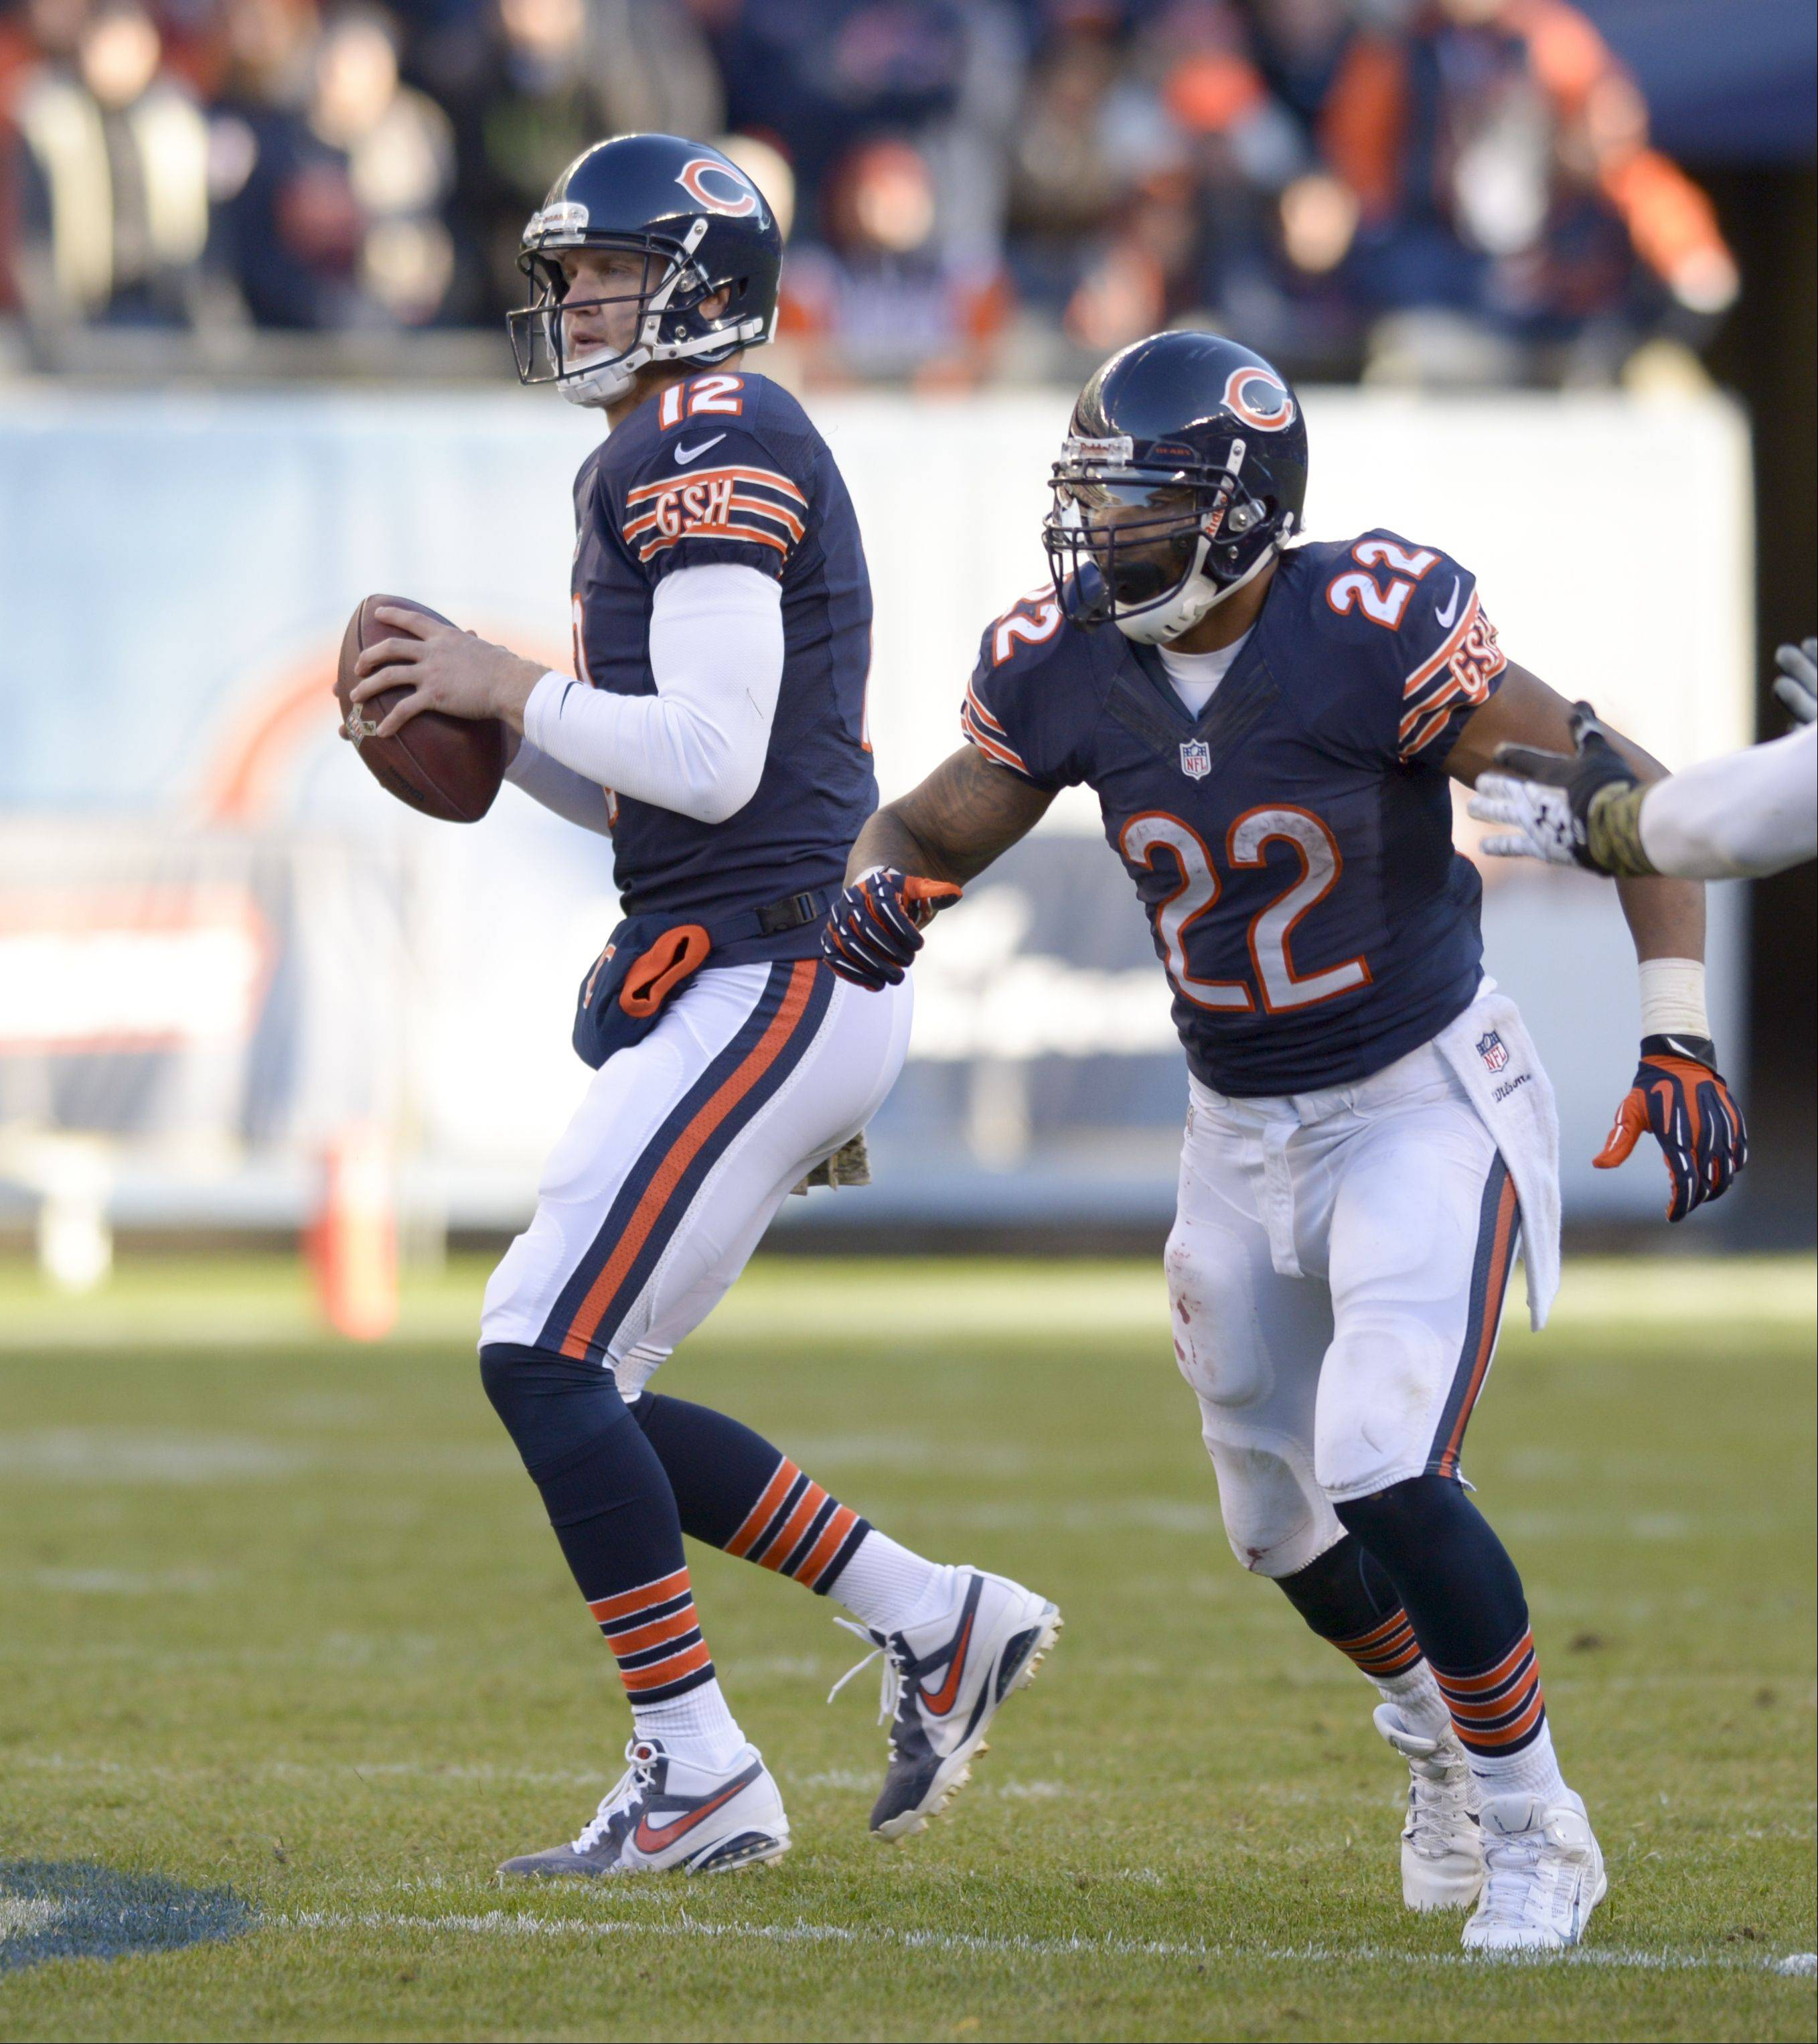 The Chicago Bears play against the Detroit Lions in the second half at Soldier Field, Sunday November 10th.